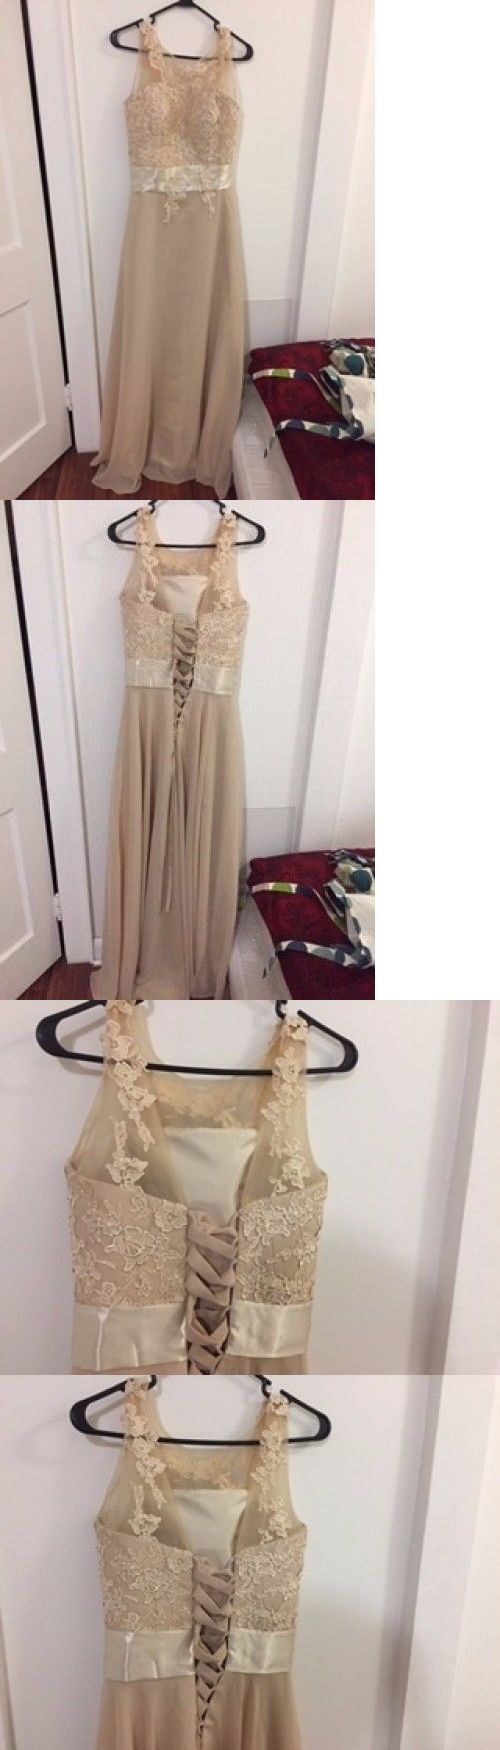 Prom And Formal Dresses: Long Chiffon Lace Evening Formal Party Ball Gown Prom Bridesmaid Dress Size 6~22 BUY IT NOW ONLY: $48.68